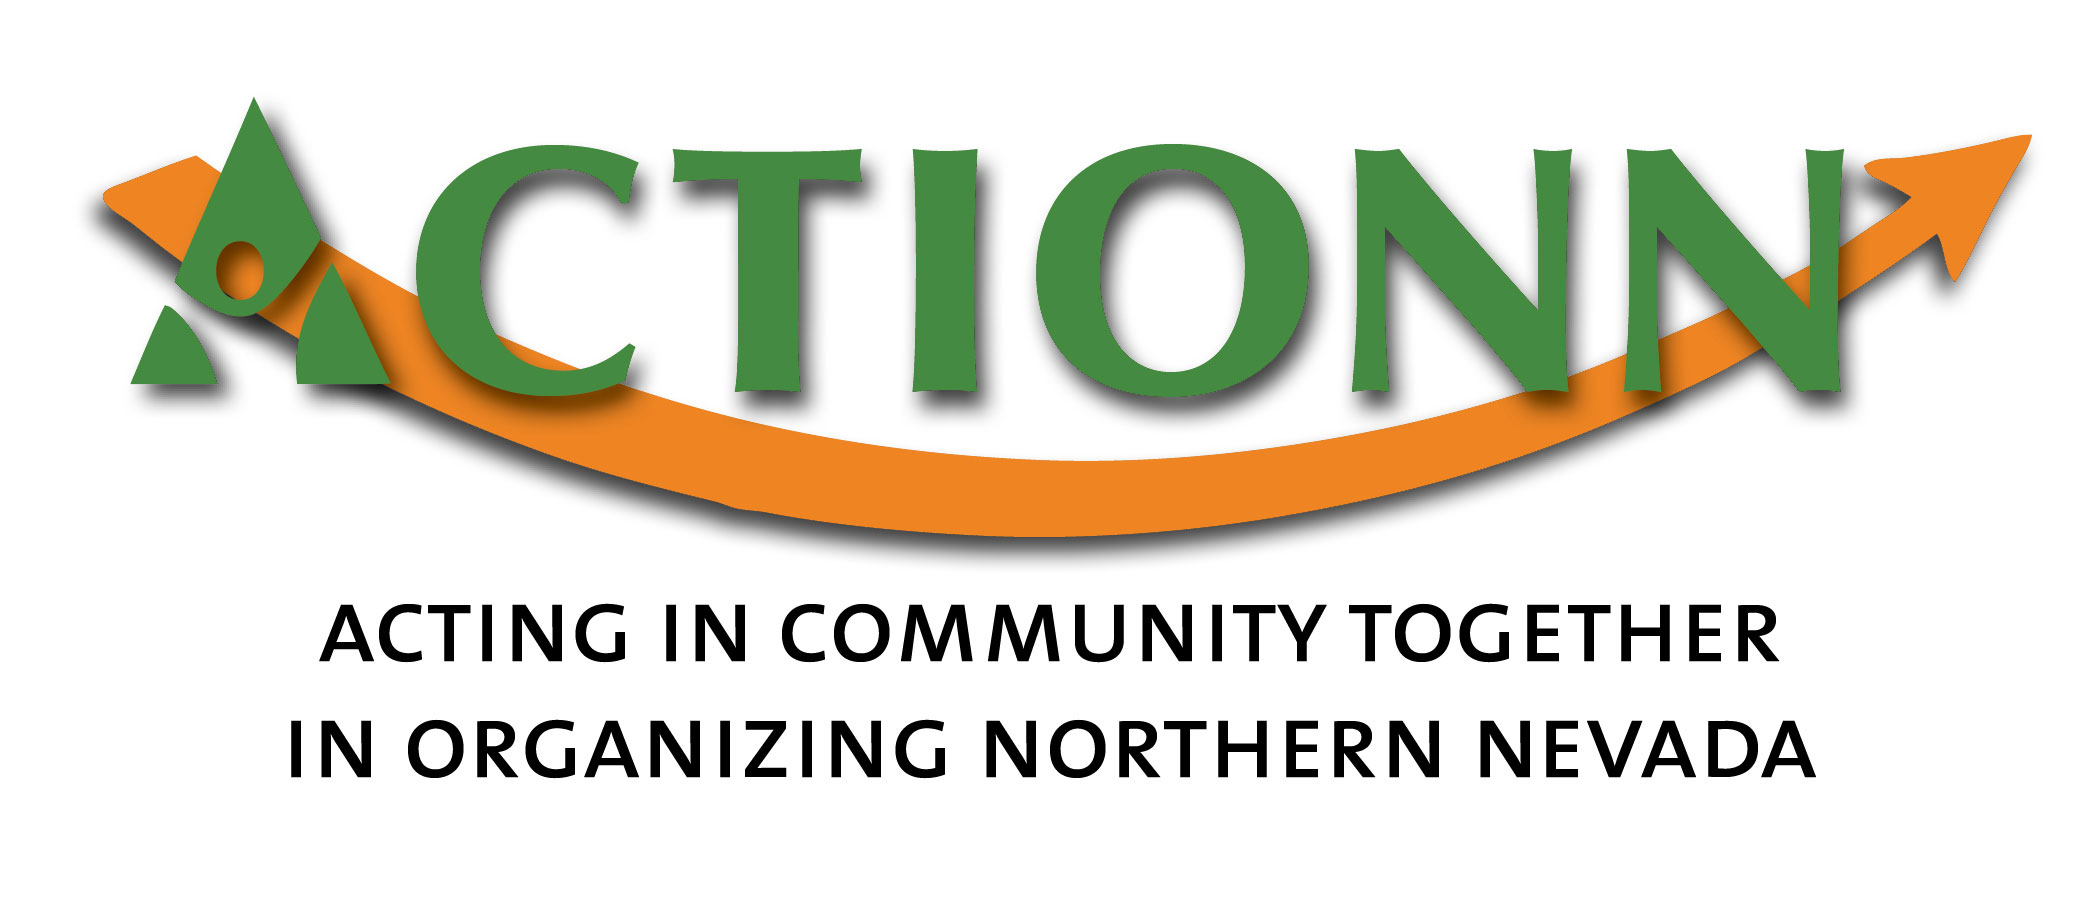 ACTIONN logo: Acting in Community Together in Organizing Northern Nevada